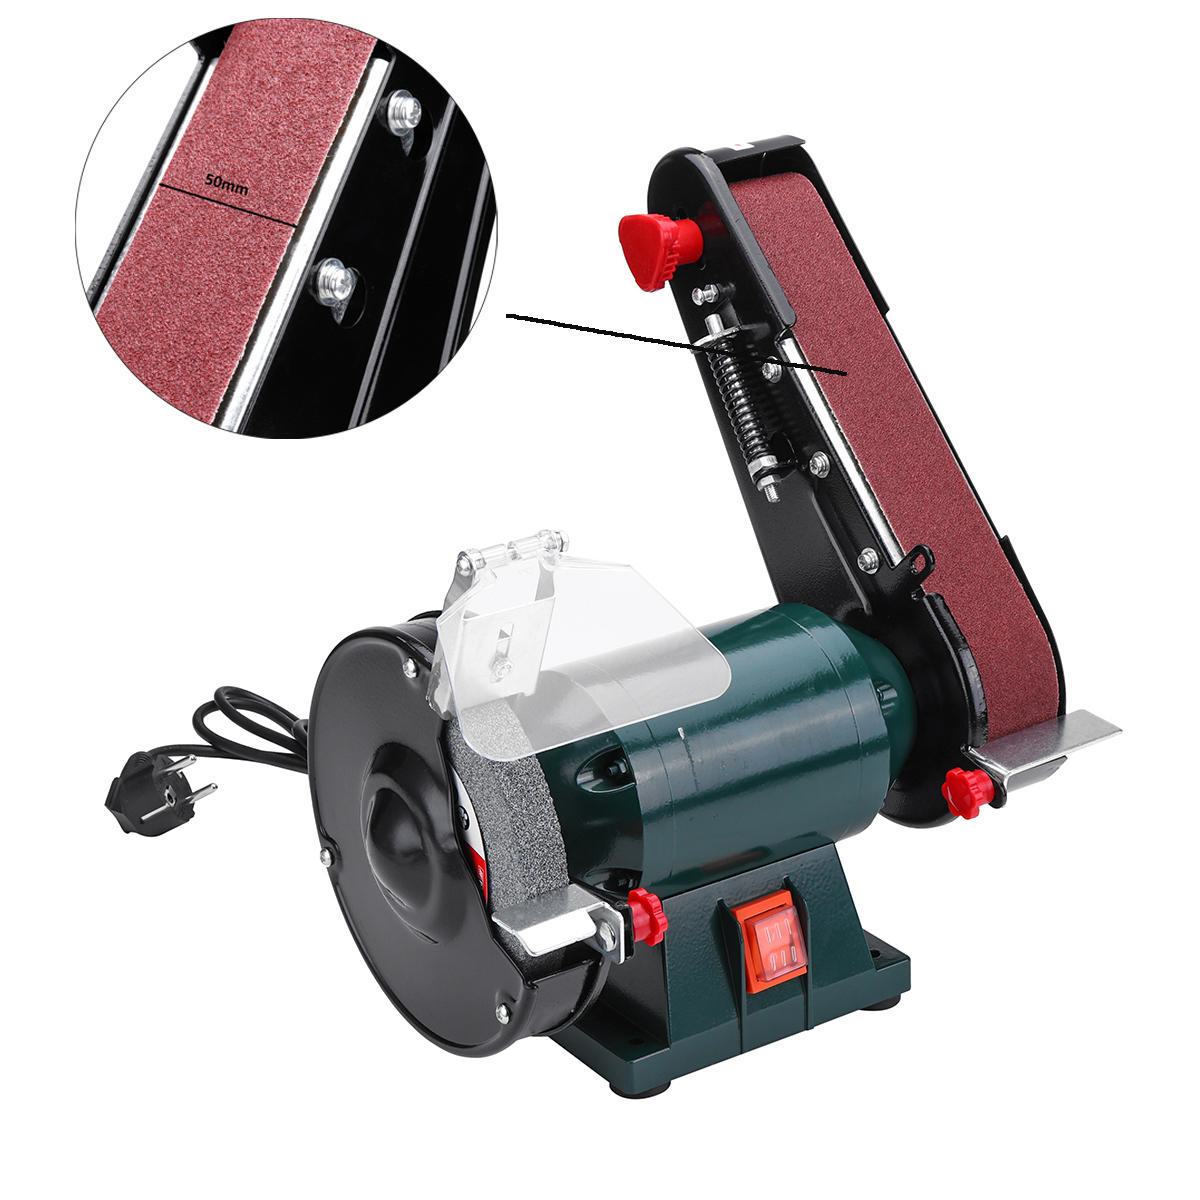 Sensational 6 Inch 150Mm Bench Grinder Belt Sander Sharpener Linisher Electric Sanding Grinding Machine Gmtry Best Dining Table And Chair Ideas Images Gmtryco